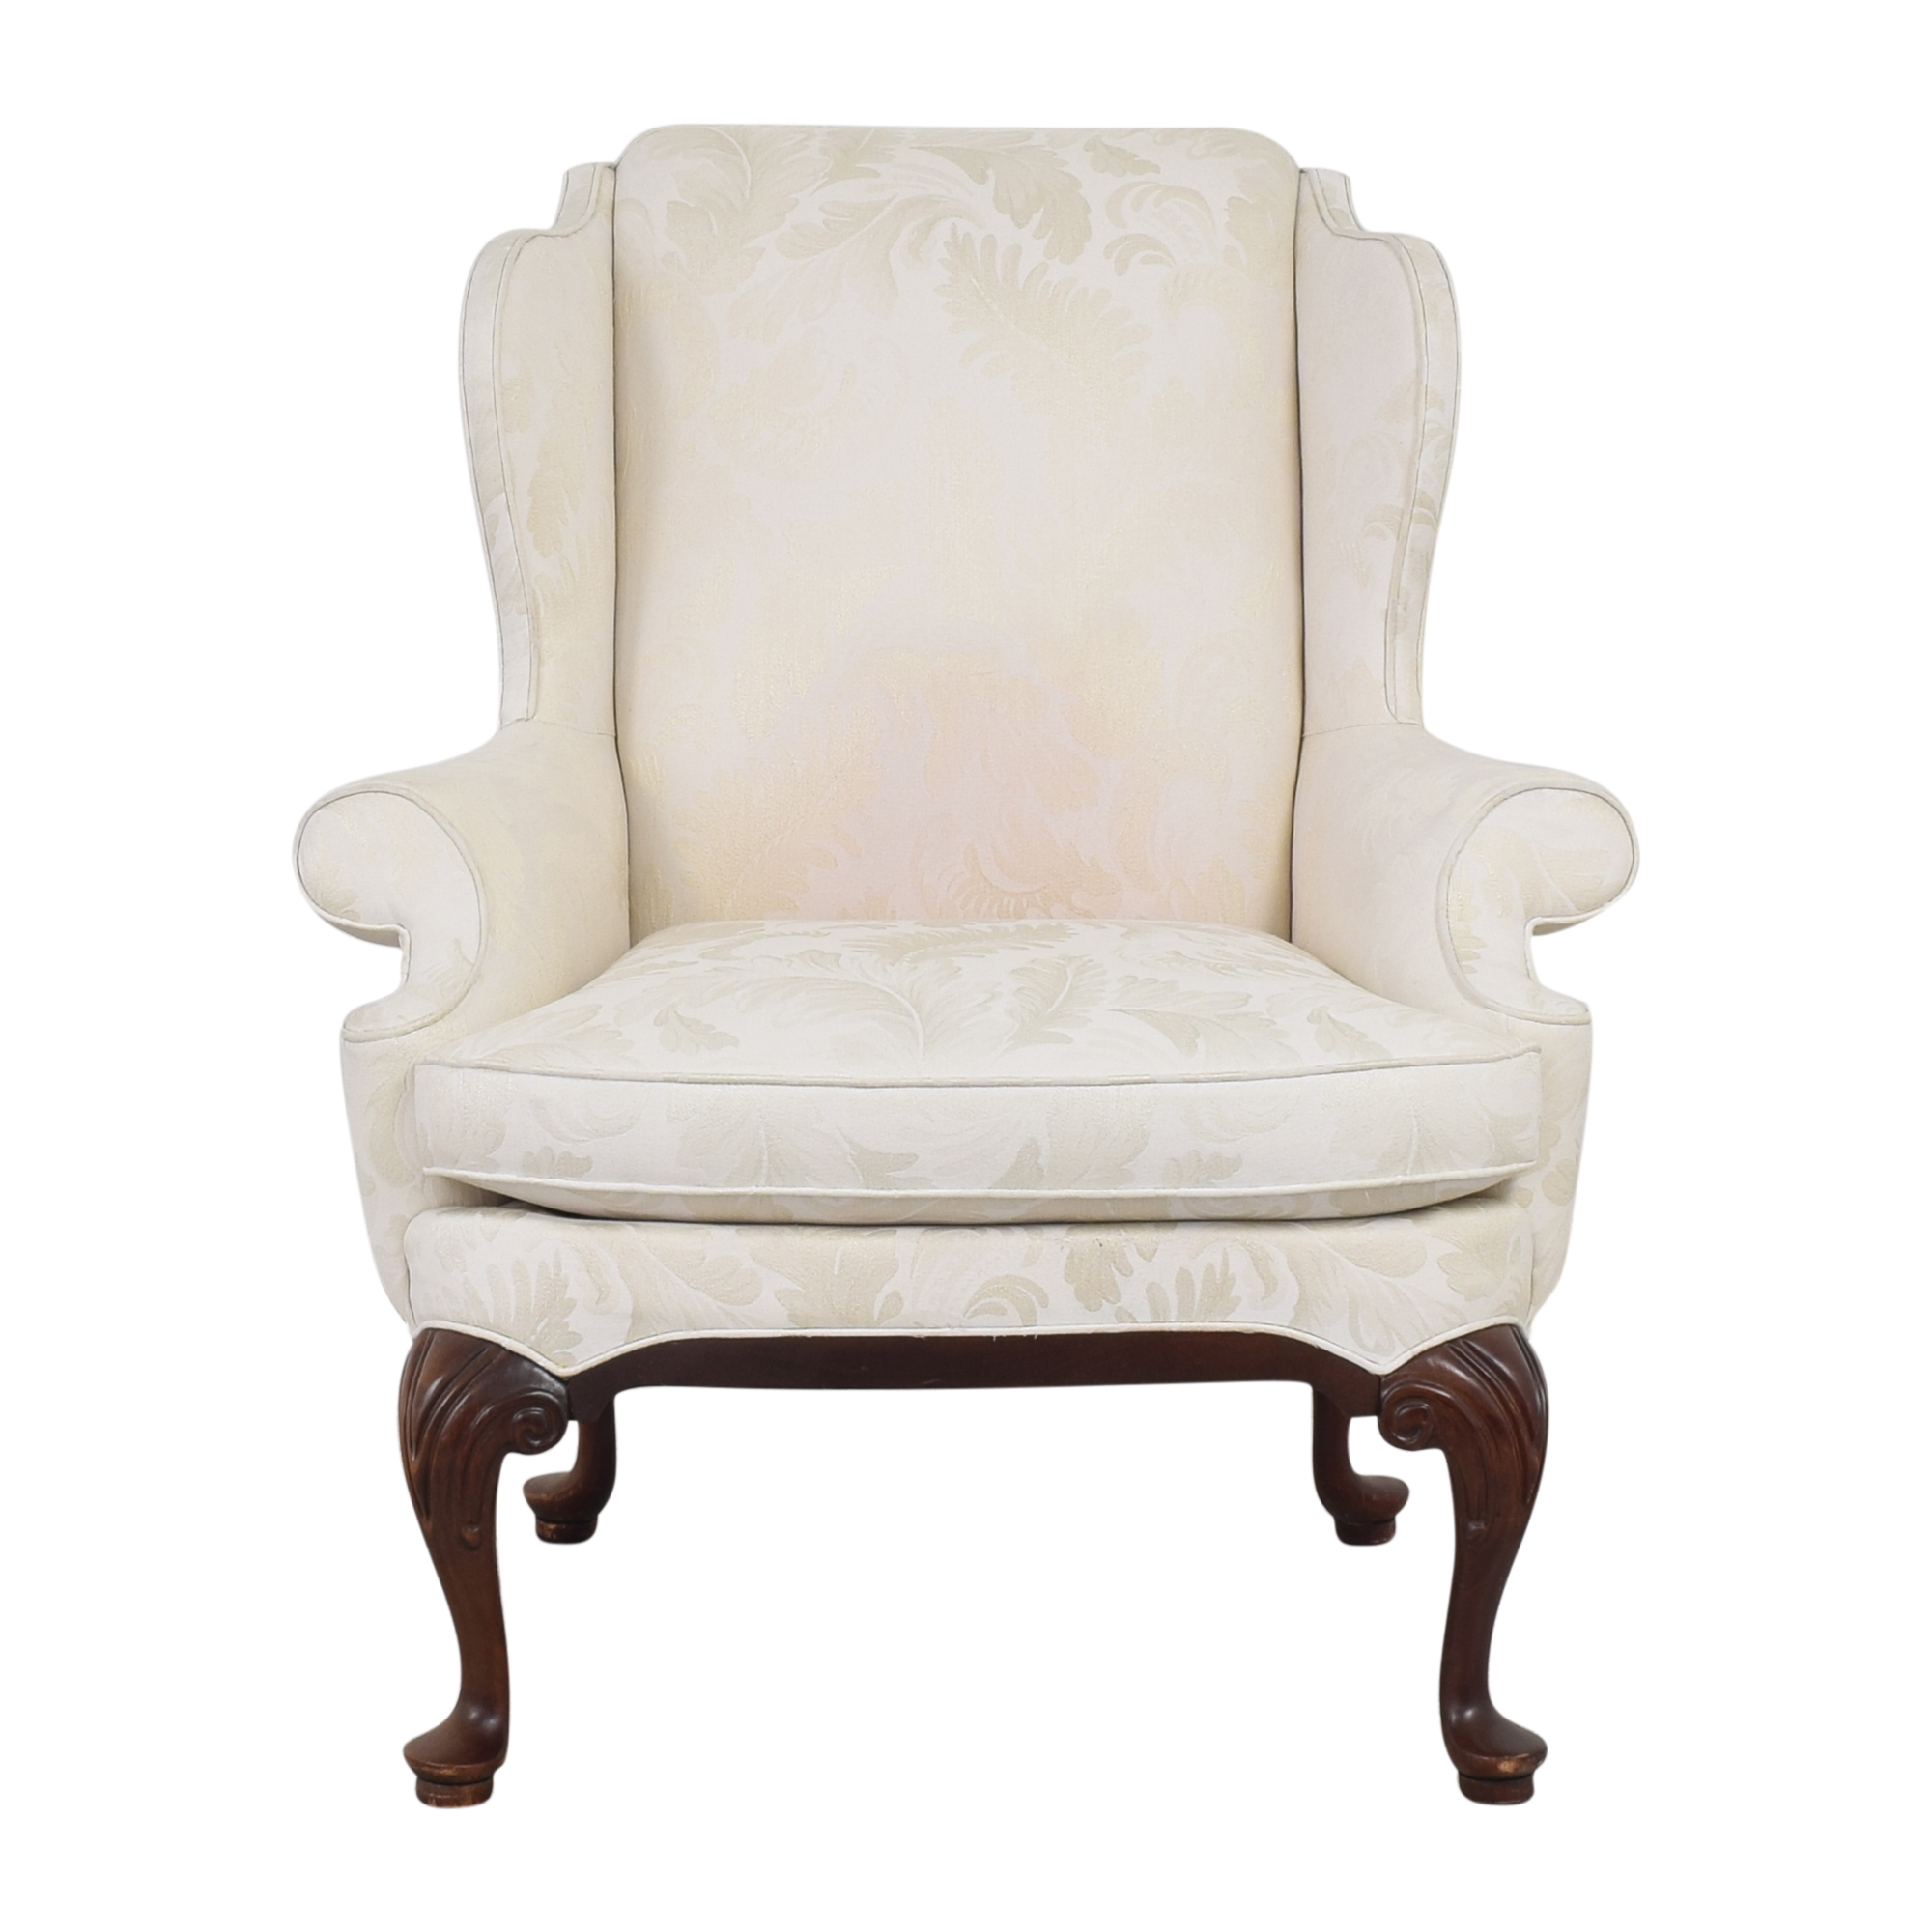 Thomasville Thomasville Wing Back Chair discount